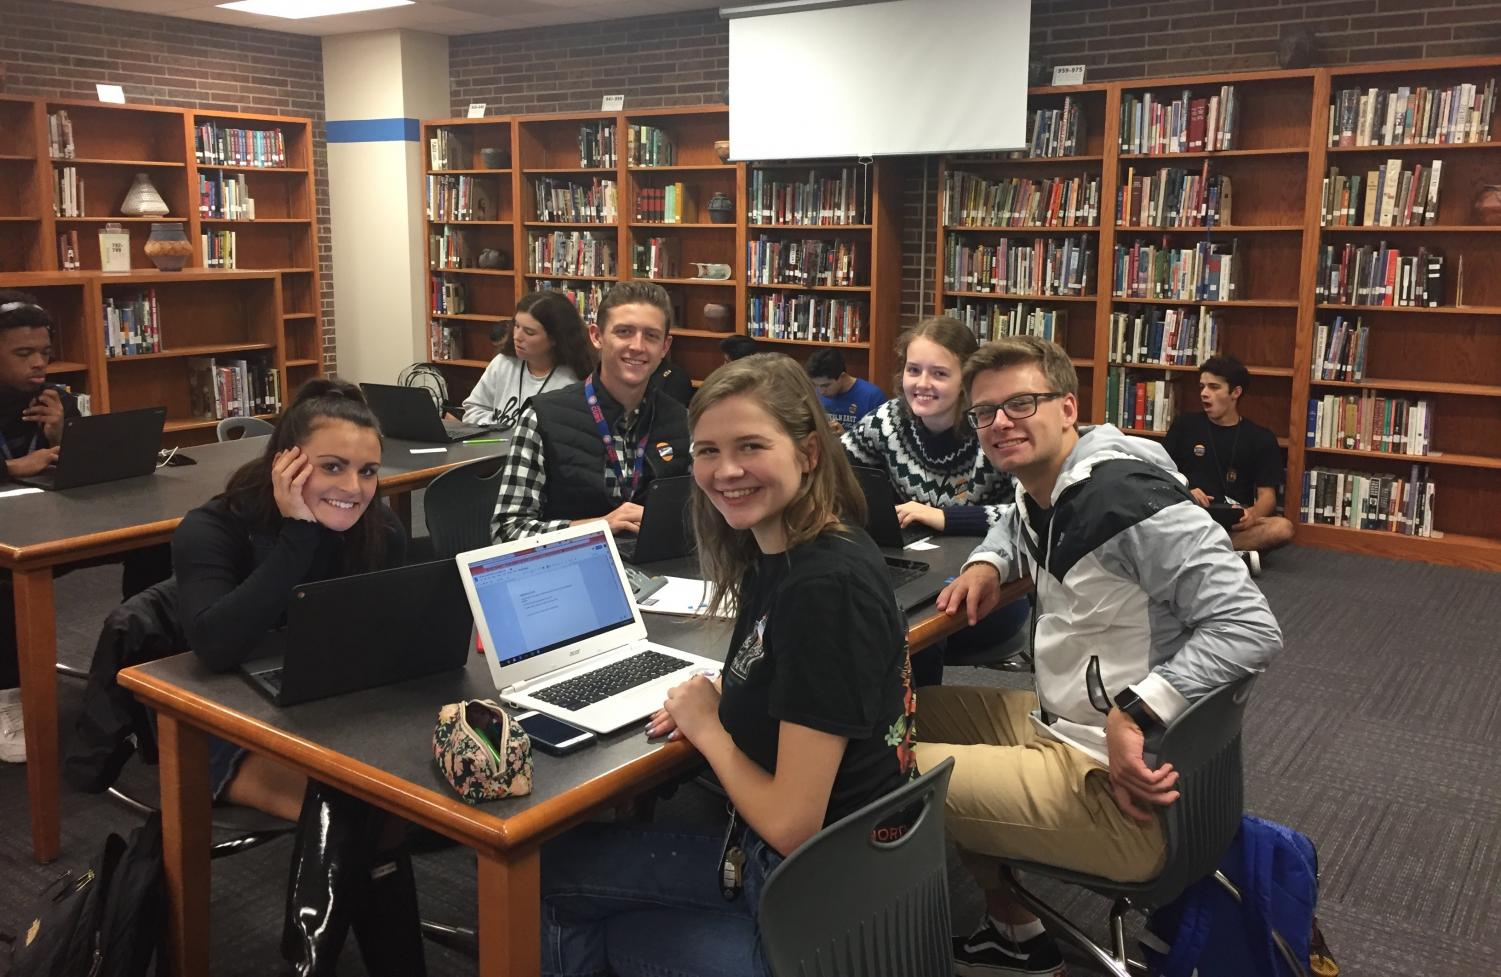 (L to R) Peytie Mickells, Turner Linafelter, Elizabeth Jurich, Will Bounds, and Veronica Chapman participate in Apply2College Day. This special event was held last Tuesday for seniors to get help in the college planning process.